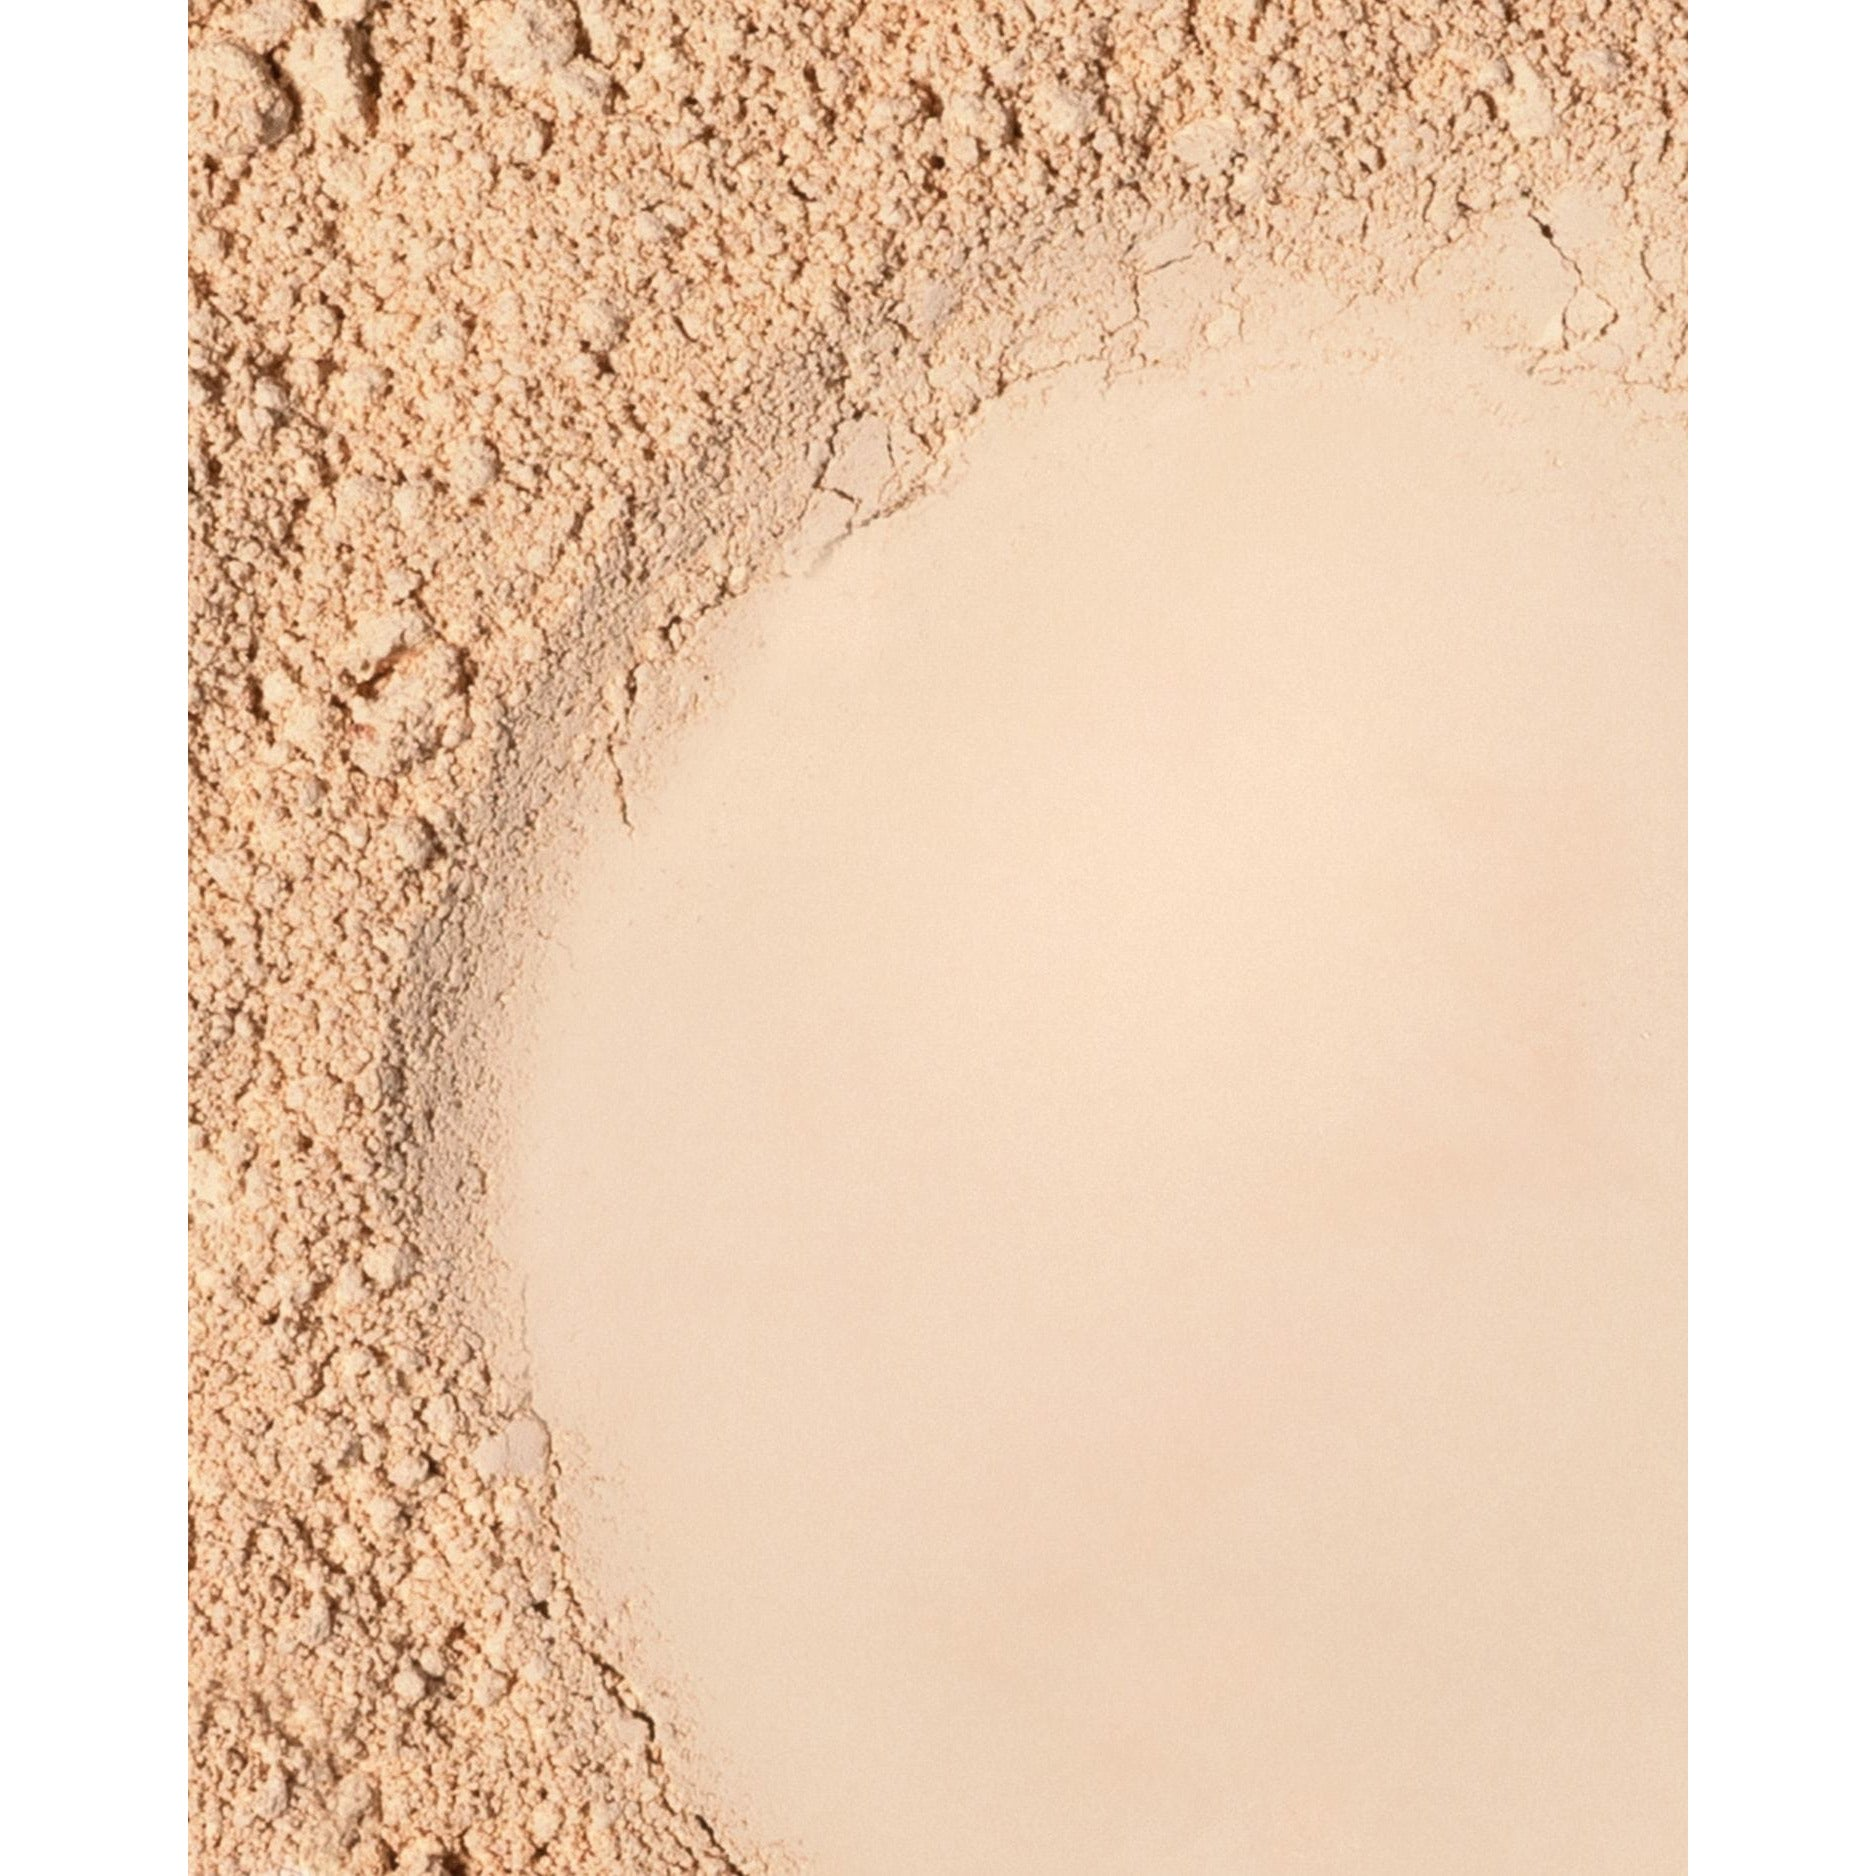 Thoughtful - Omiana Loose Powder Mineral Foundation No Titanium Dioxide and No Mica